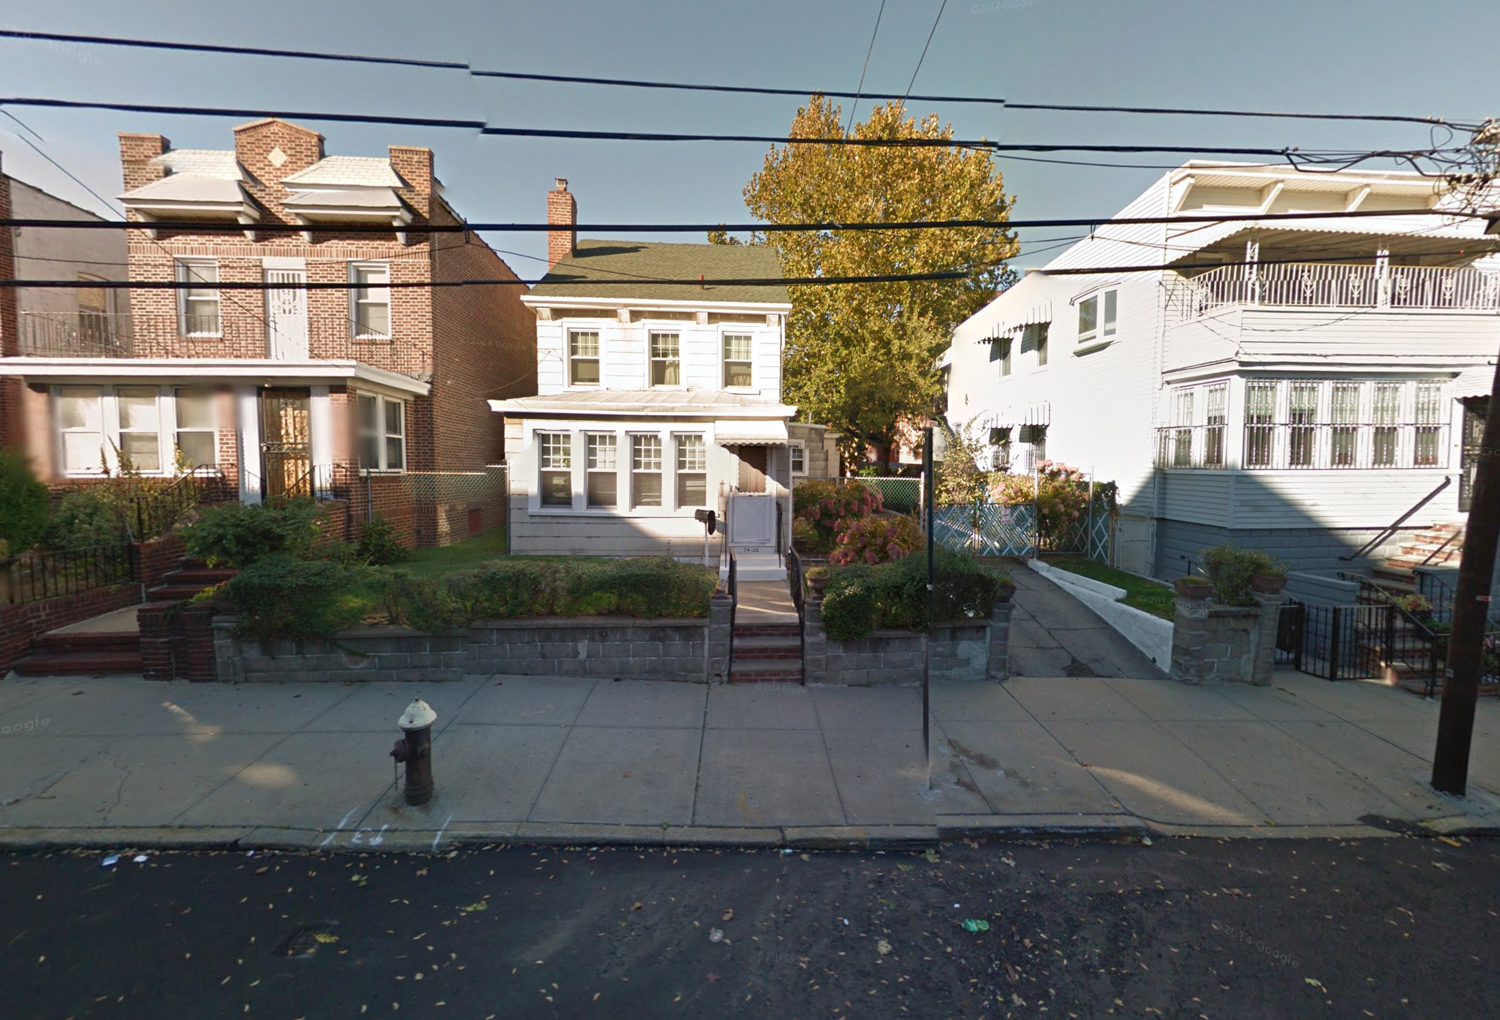 74-25 43rd Avenue, via Google Maps